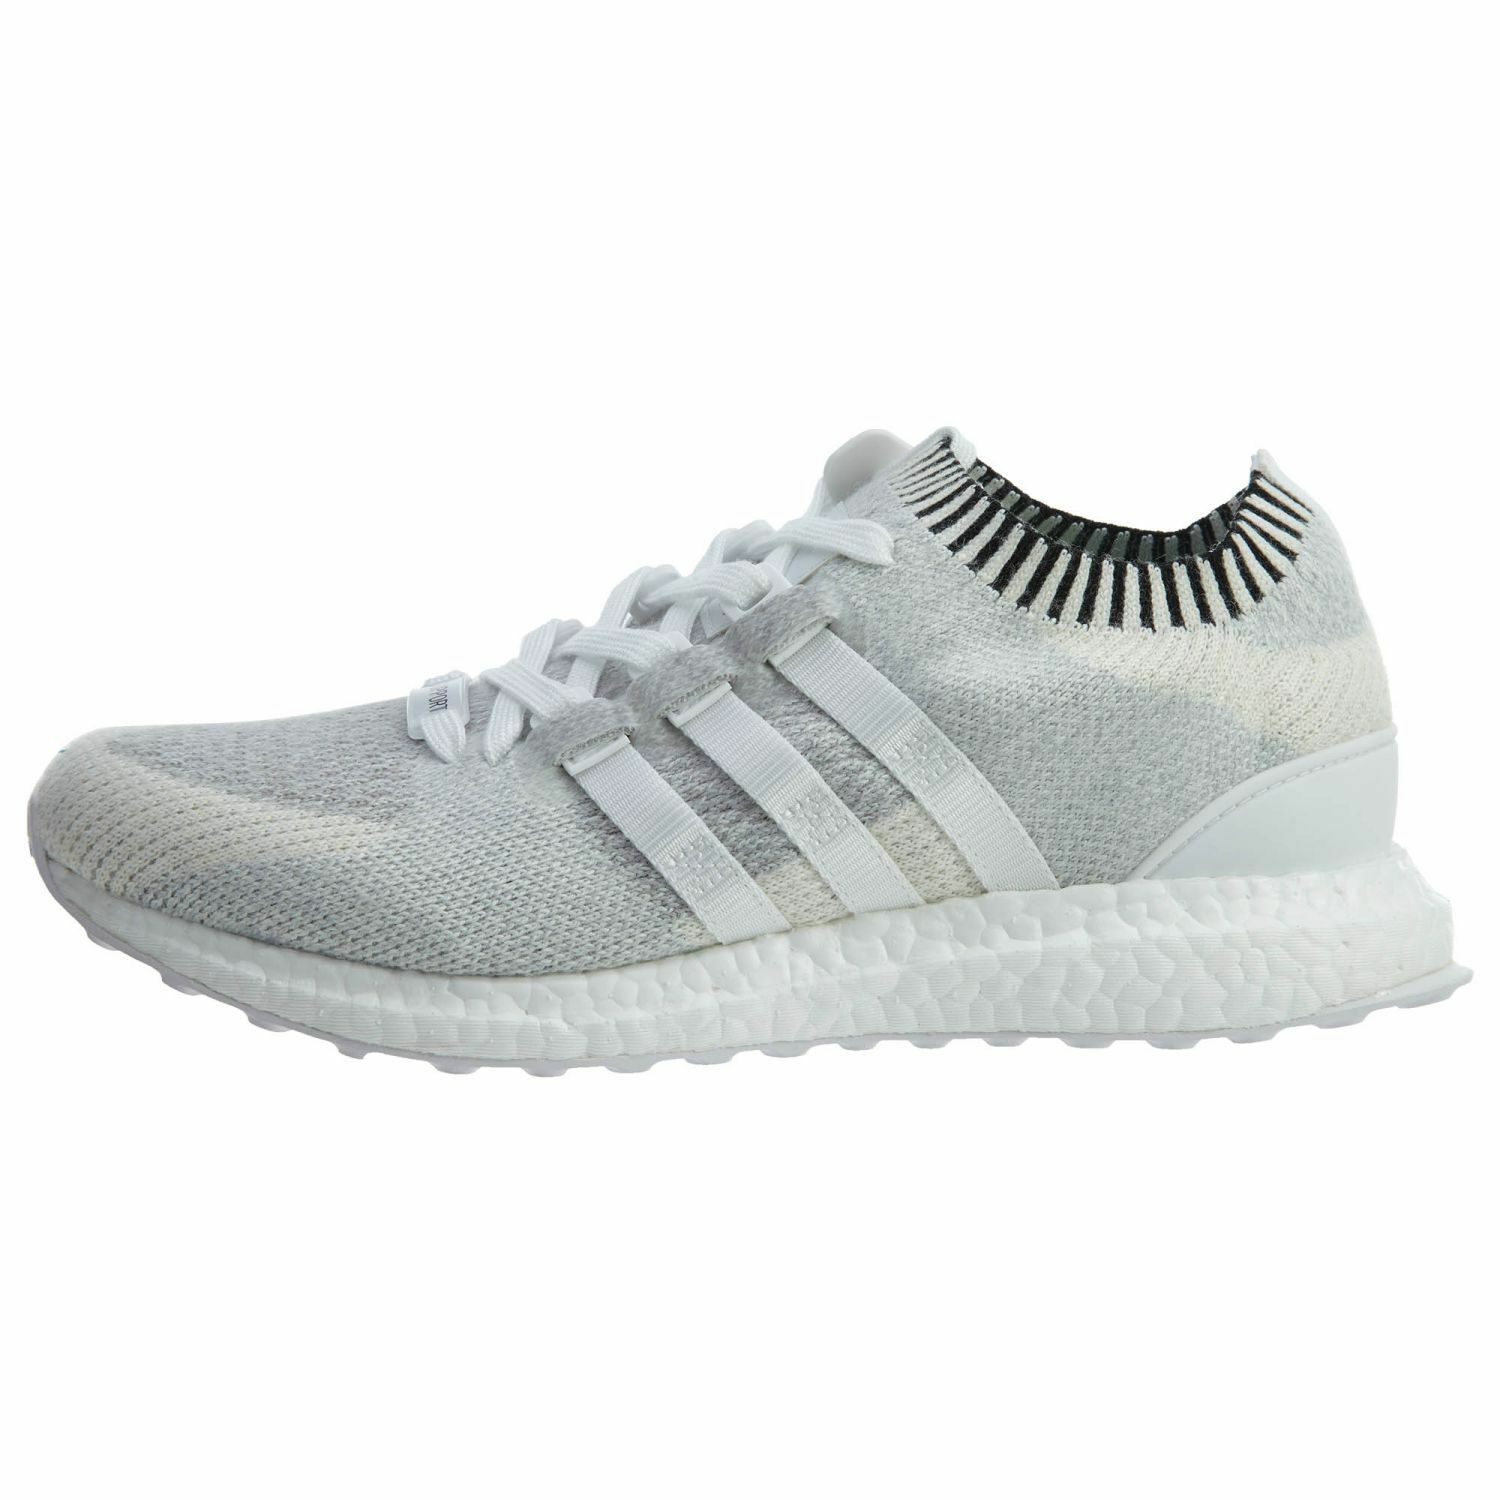 Adidas EQT Support Ultra PK Mens BB1242 White Primeknit Running shoes Size 7